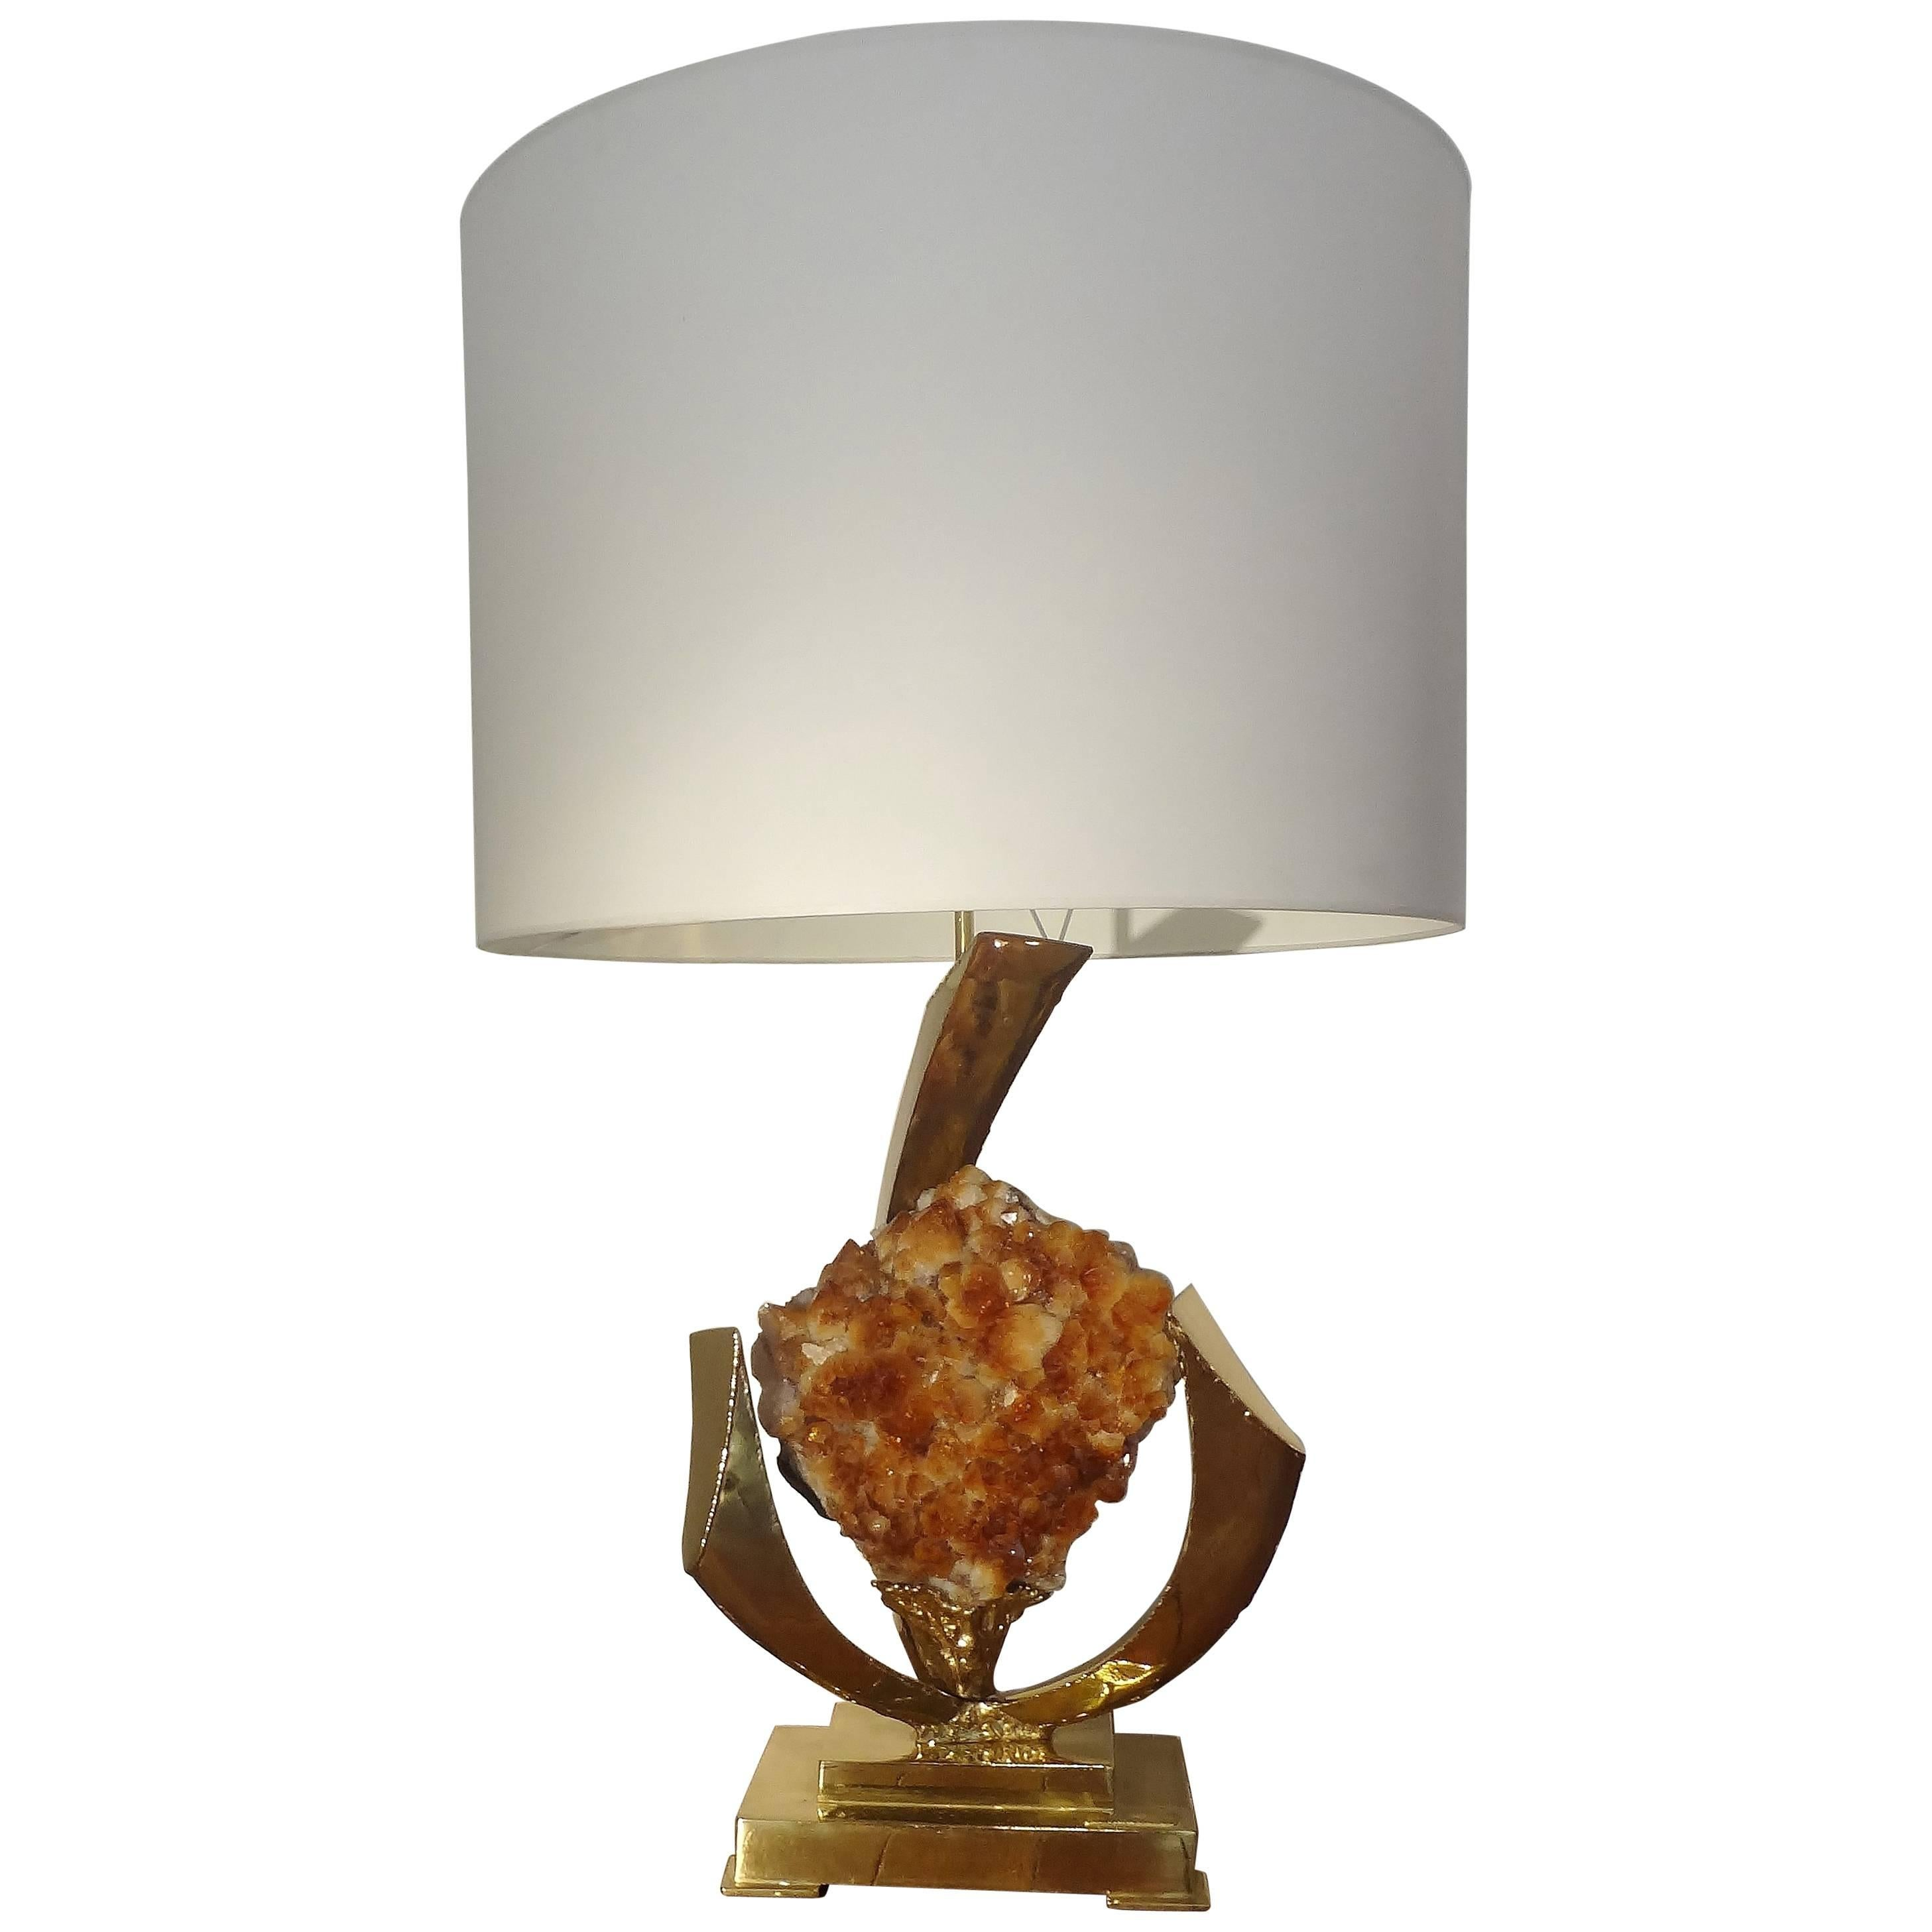 Sculpted Table Lamp with a Rock Crystal Geode, 1970s by J. Duval-Brasseur